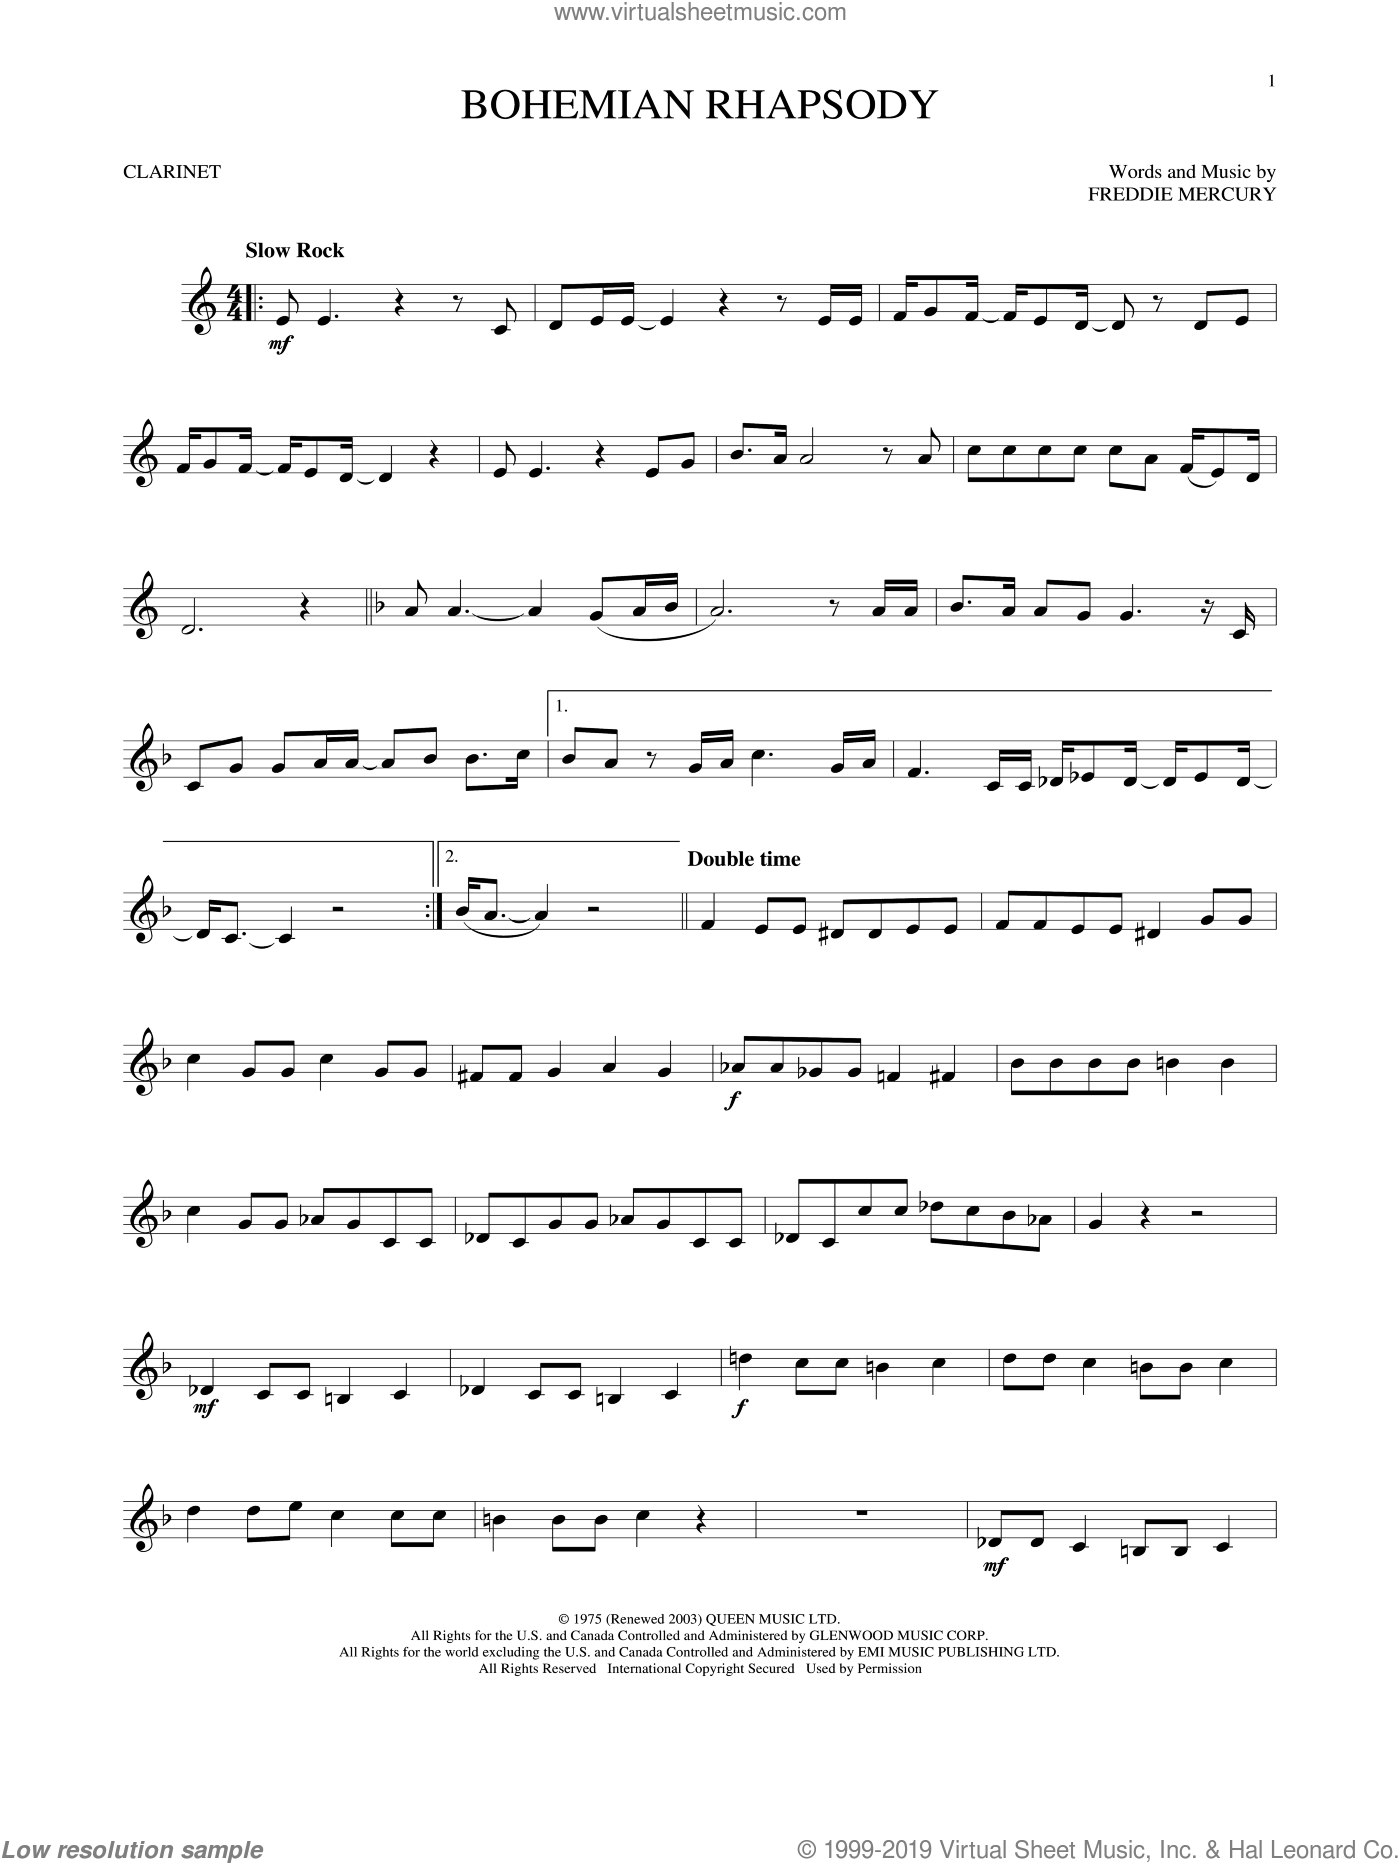 Bohemian Rhapsody sheet music for clarinet solo by Queen, intermediate skill level